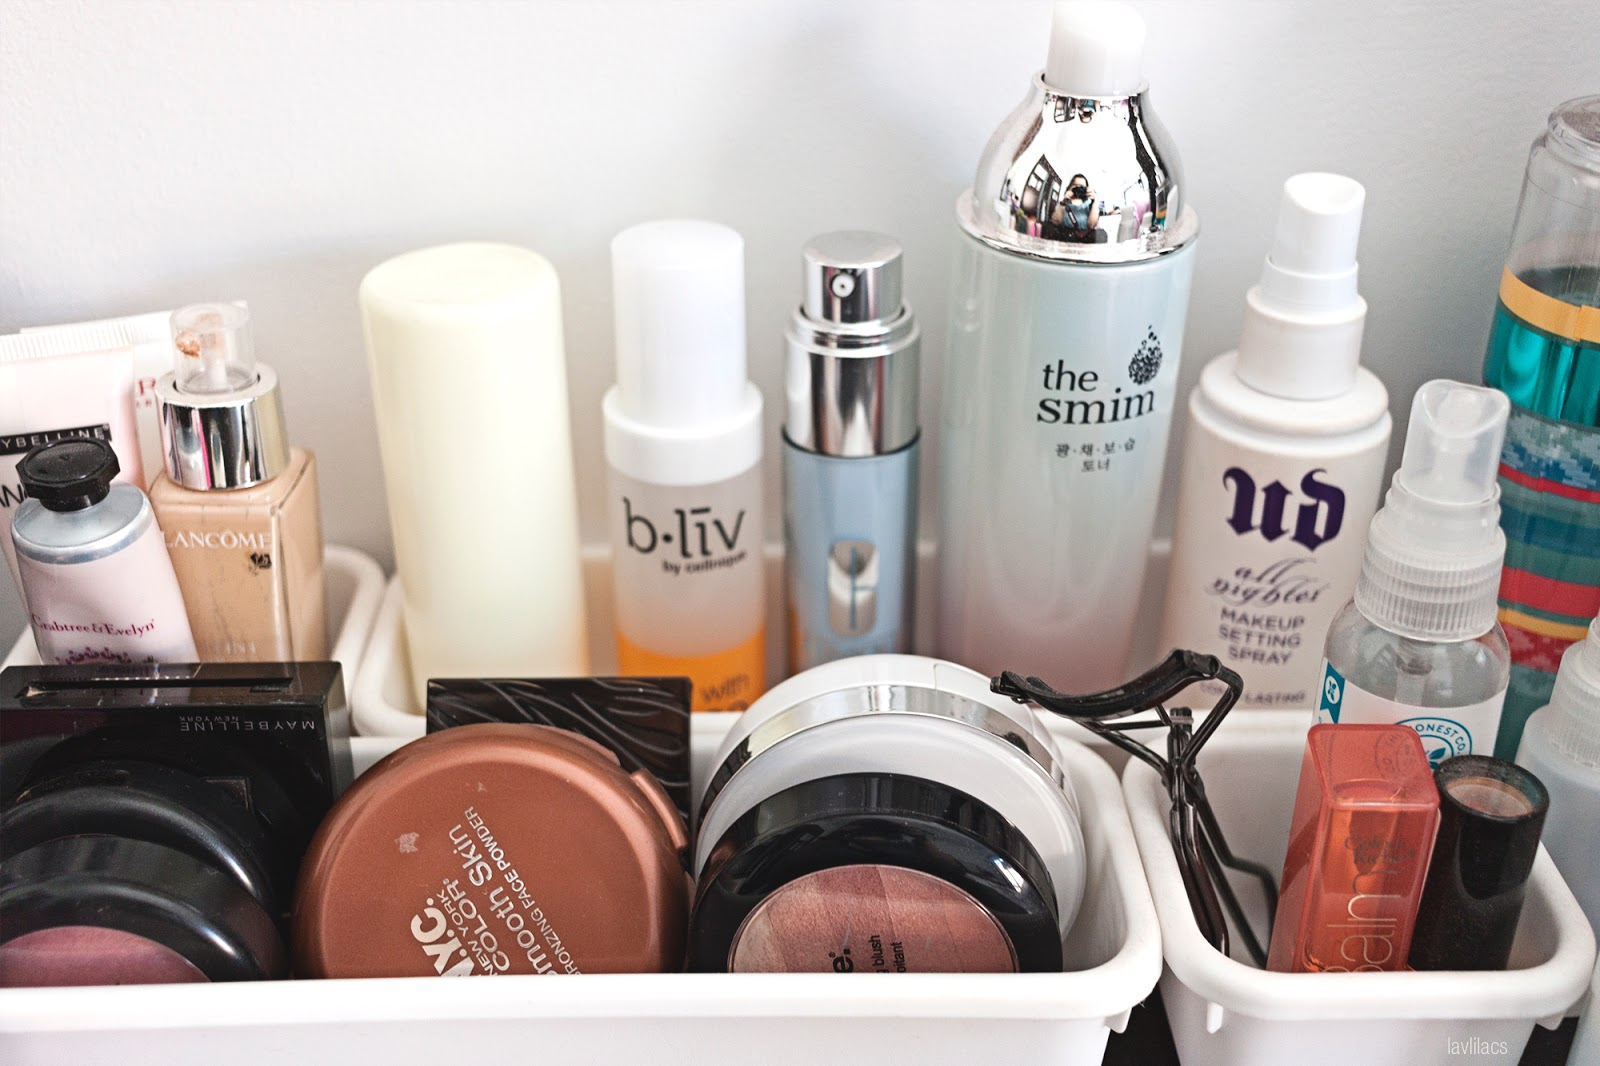 Daily makeup and bottled skincare products on top of bedside table